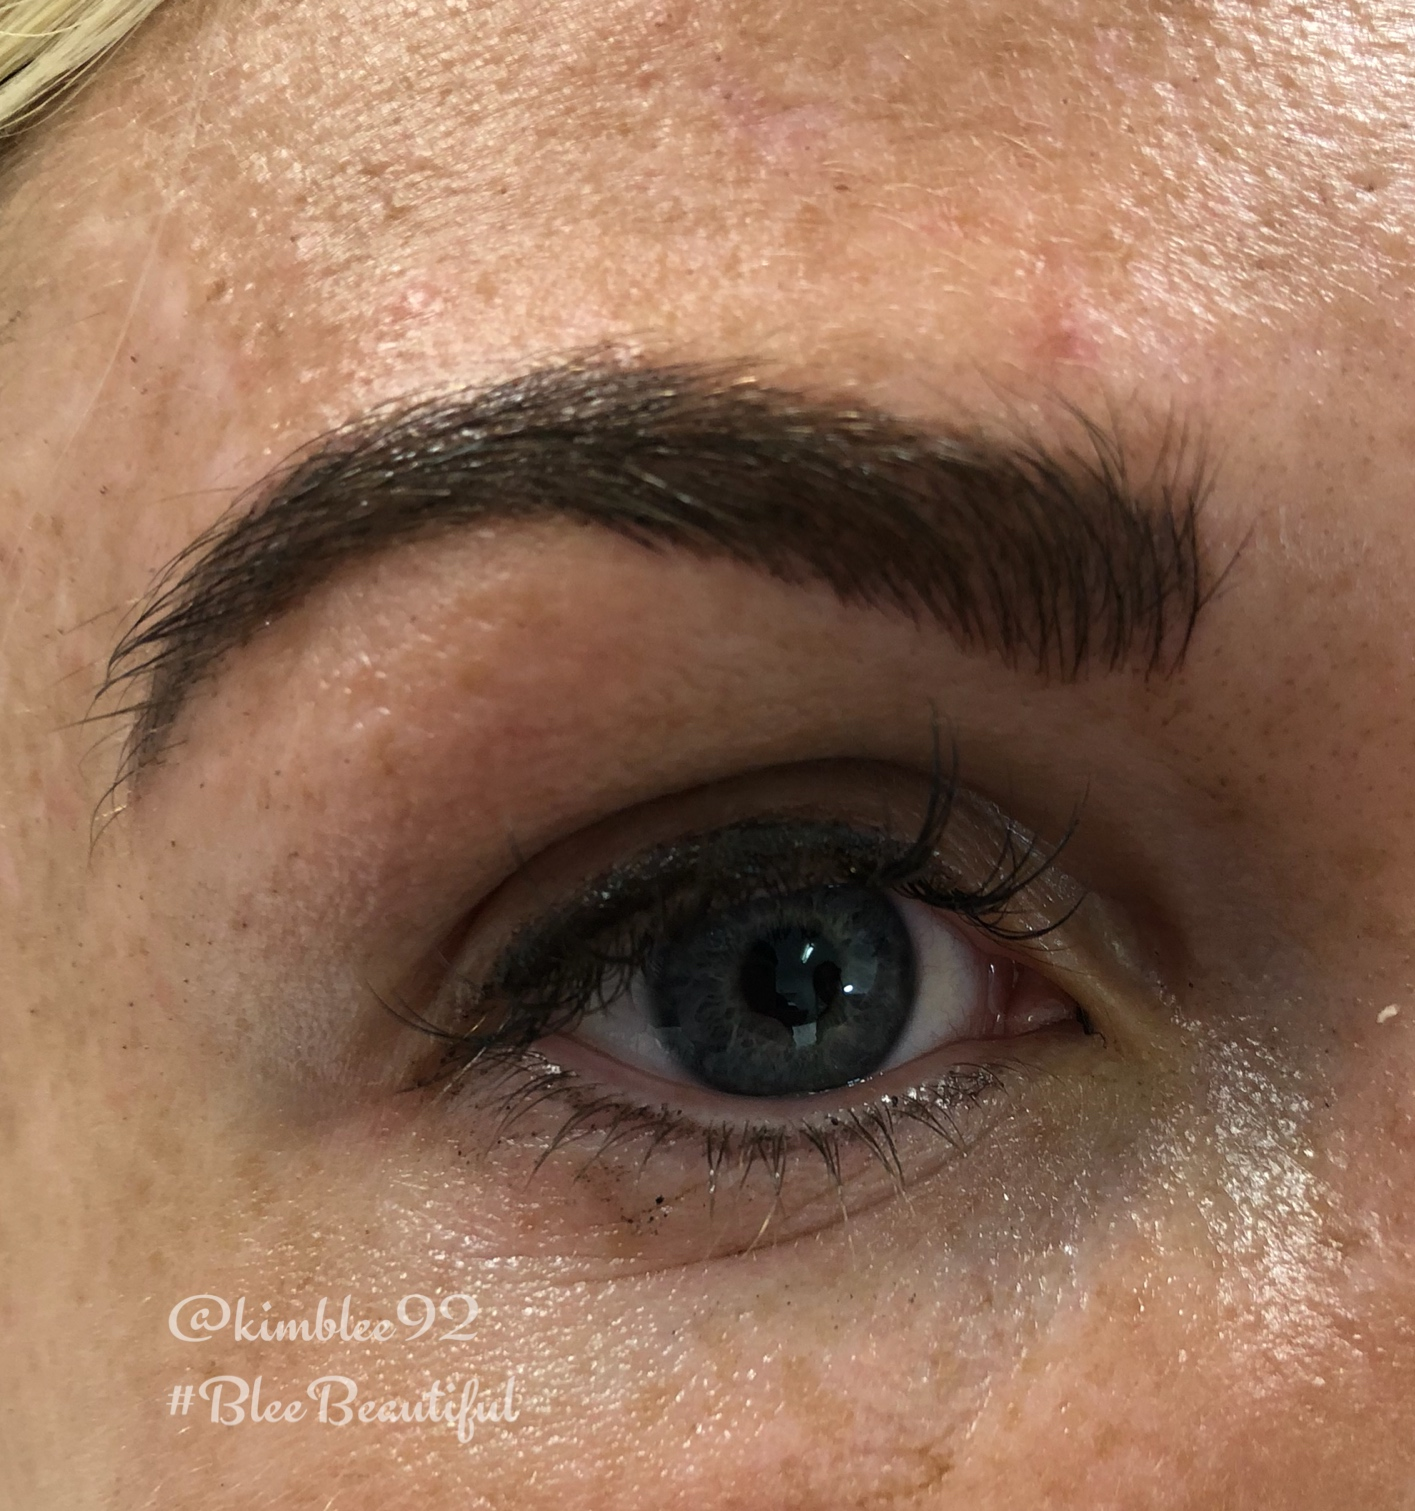 Microblading is taking the beauty world by storm - But what exactly is it and should I be booking in for that all important appointment. See our recent post for all the Q & As you may have always had.